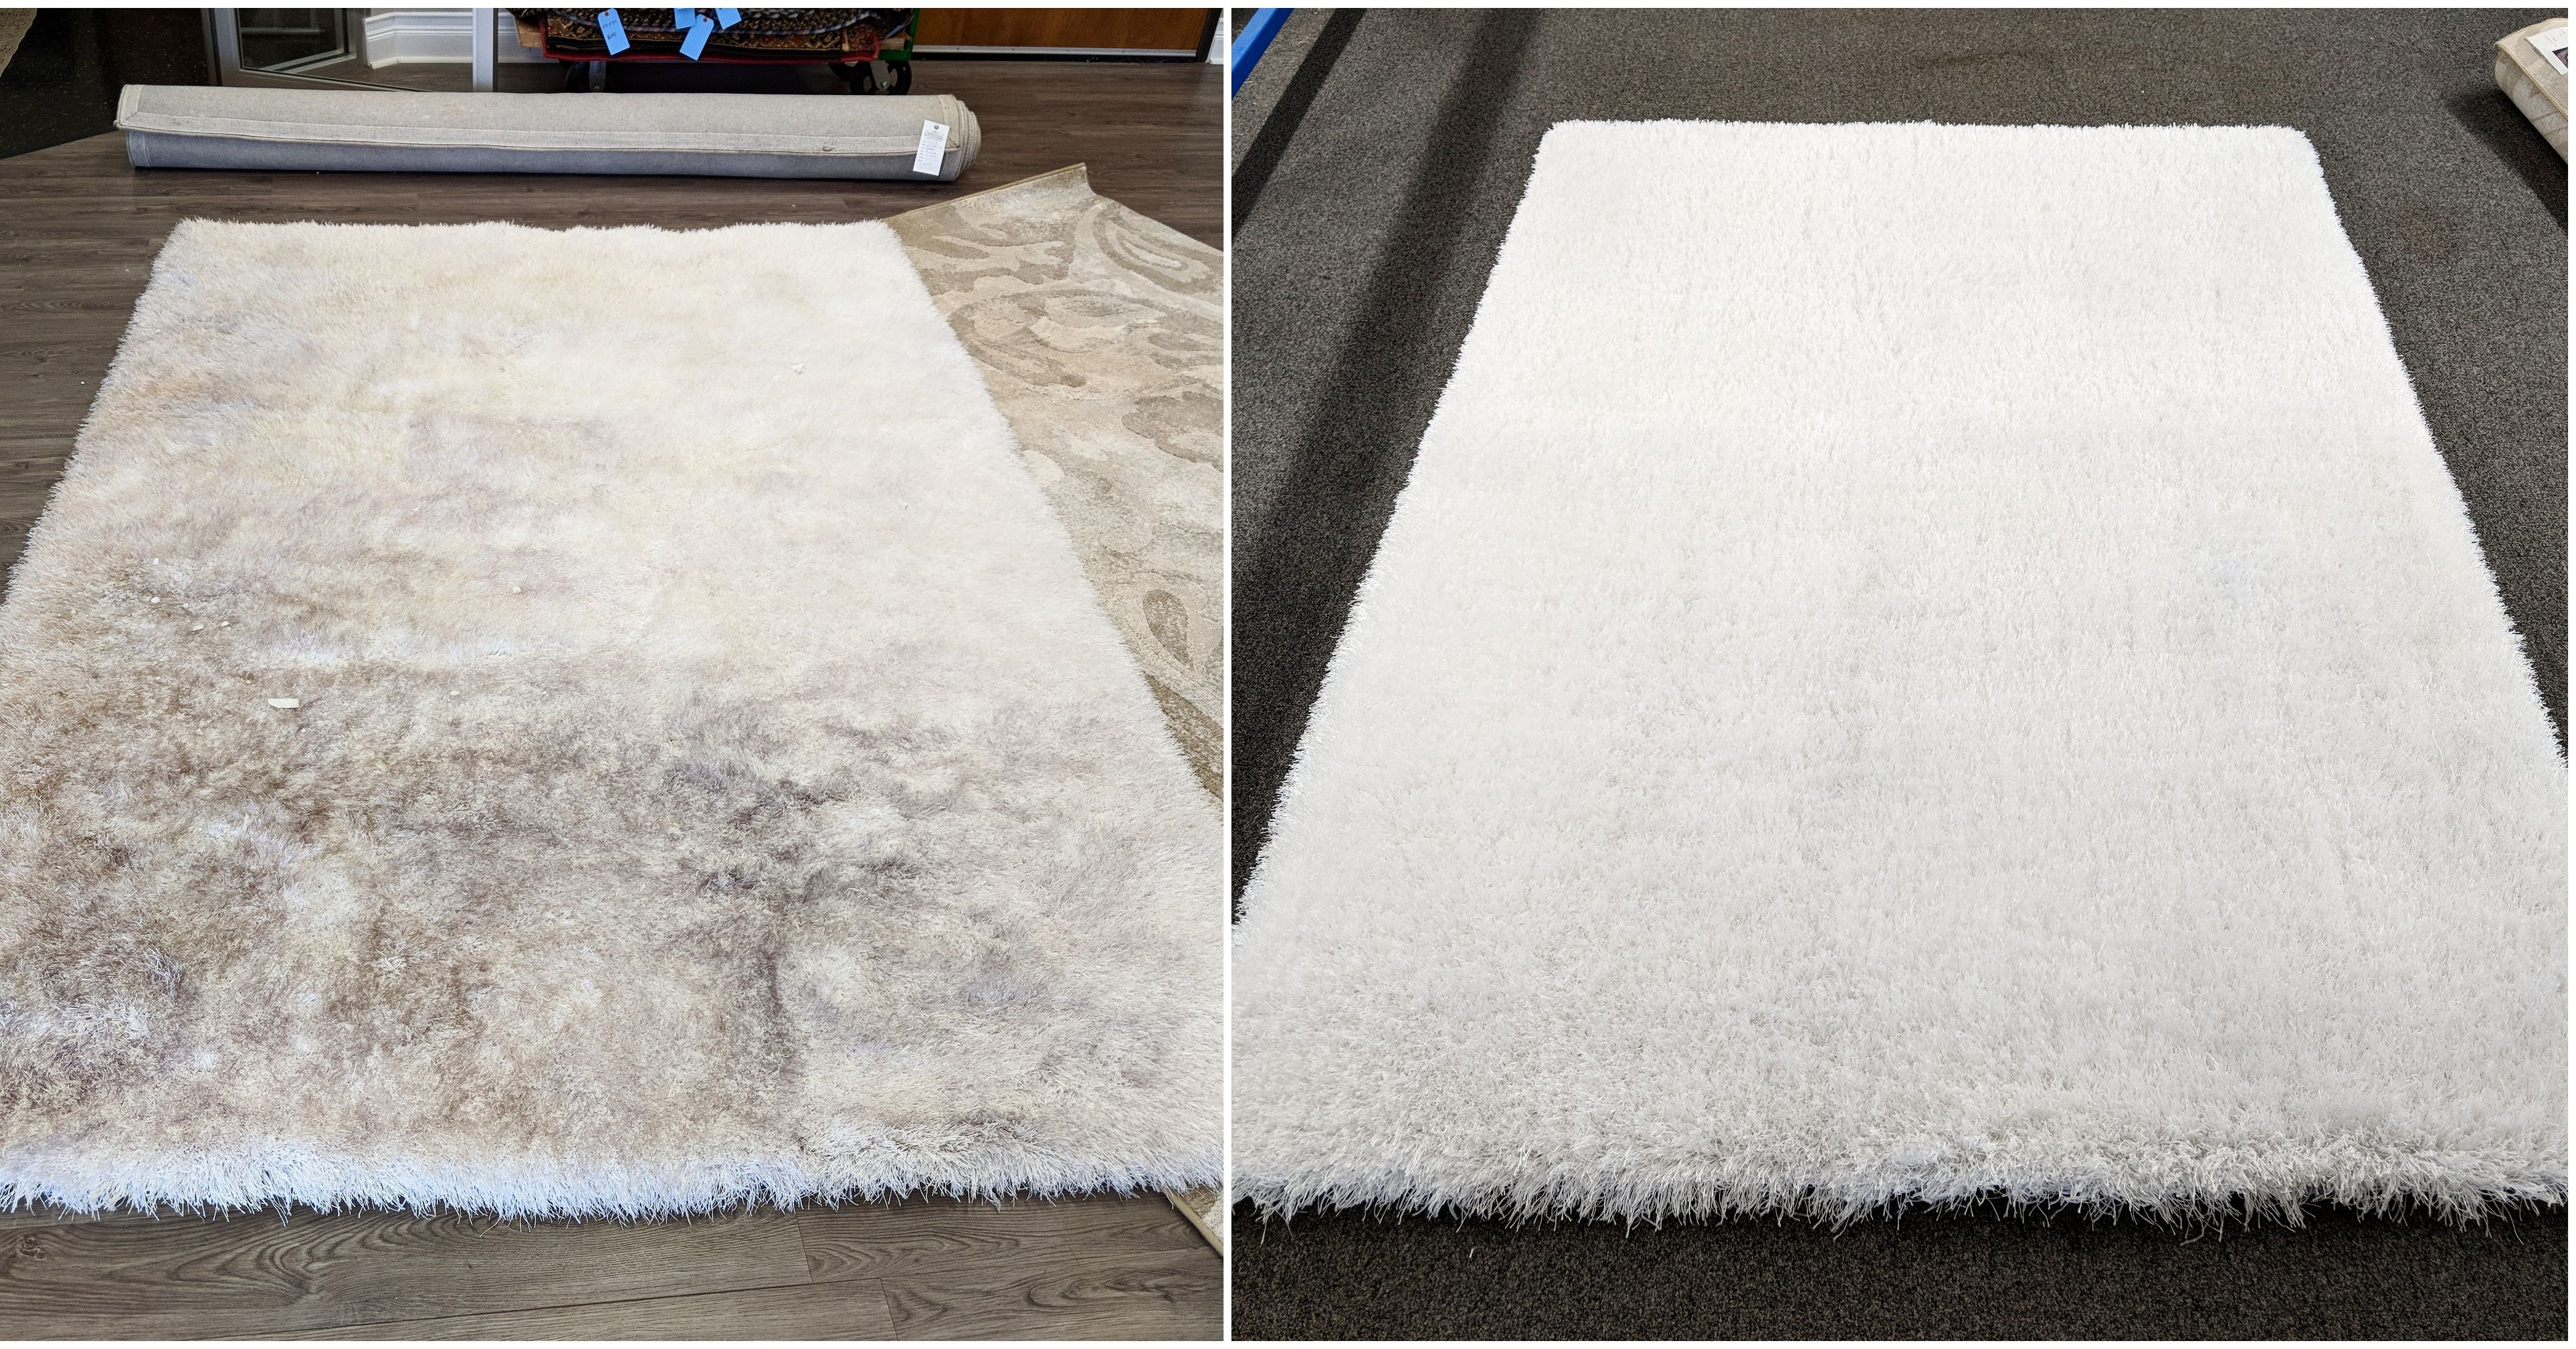 Perfect 20 Pics Rug Cleaner Indianapolis And View In 2020 Rug Cleaner Rugs Rug Cleaning